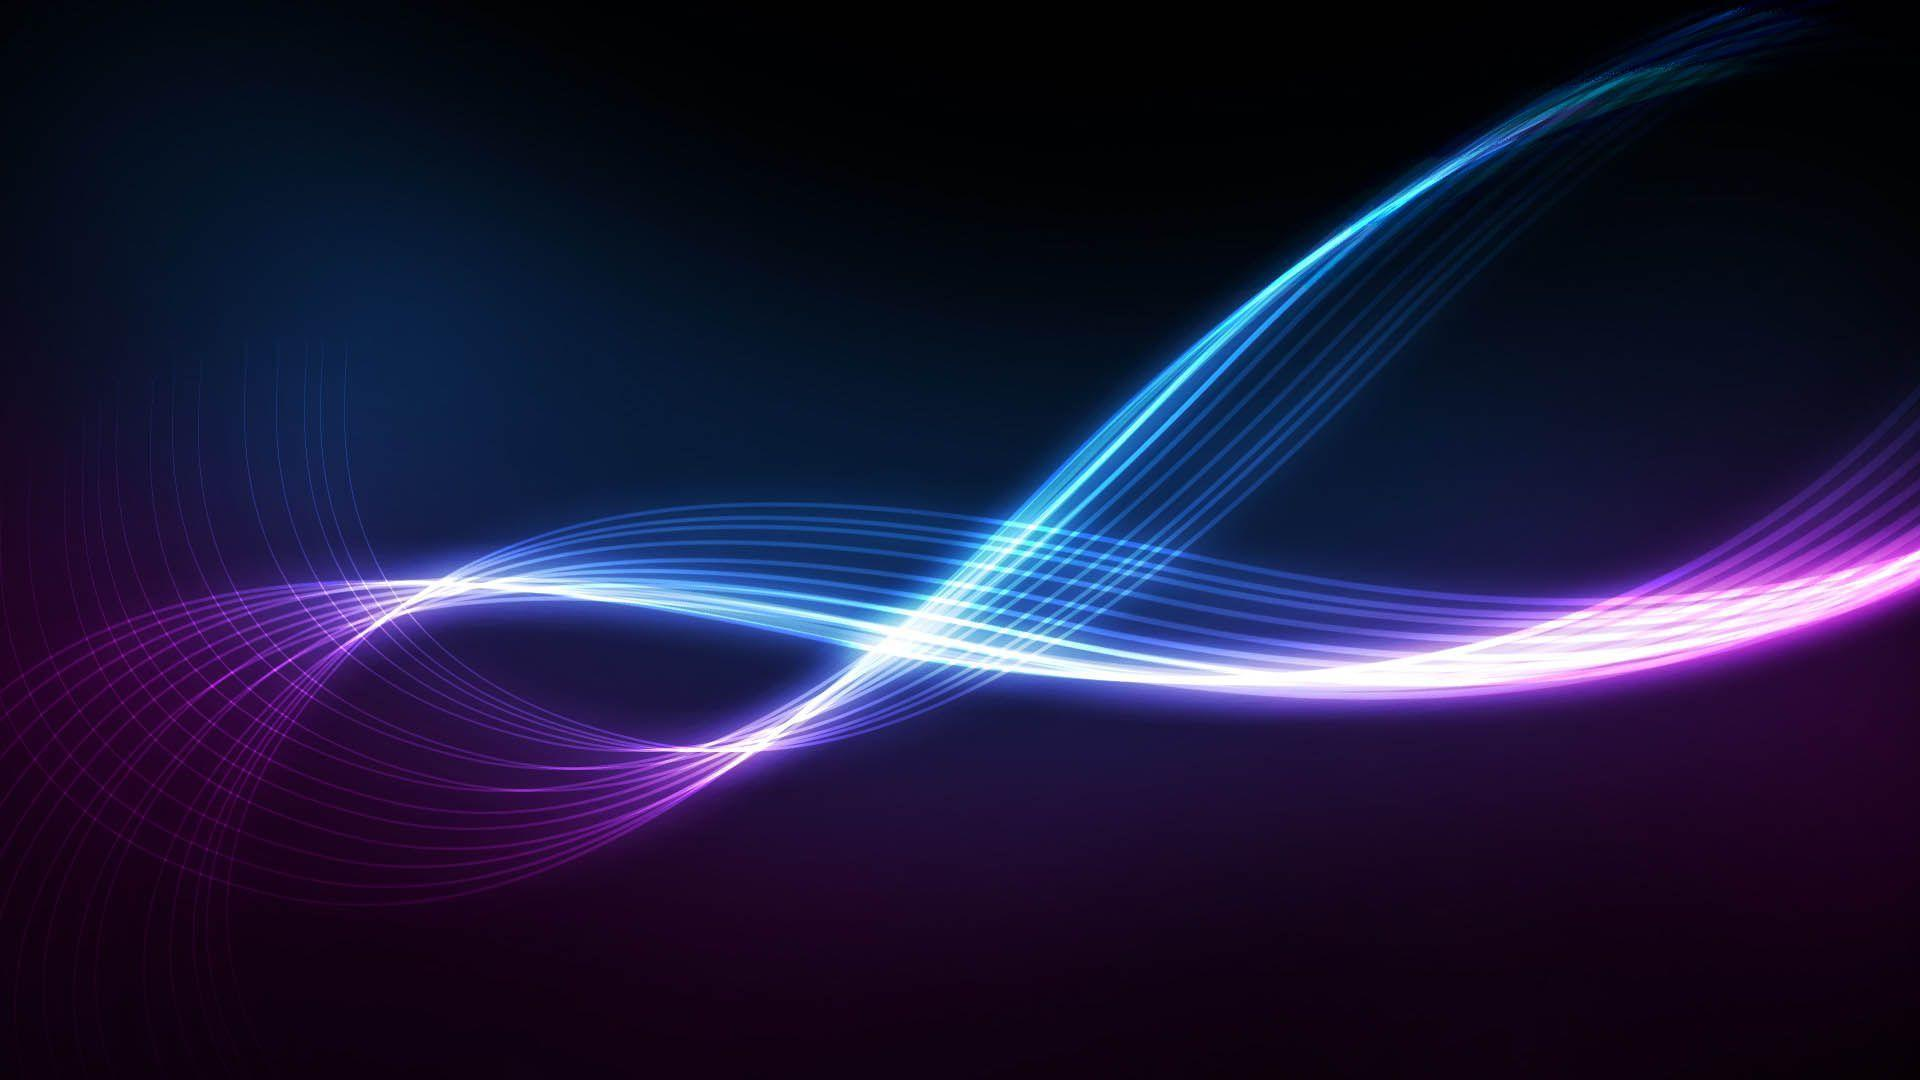 fine abstract desktop backgrounds - photo #47